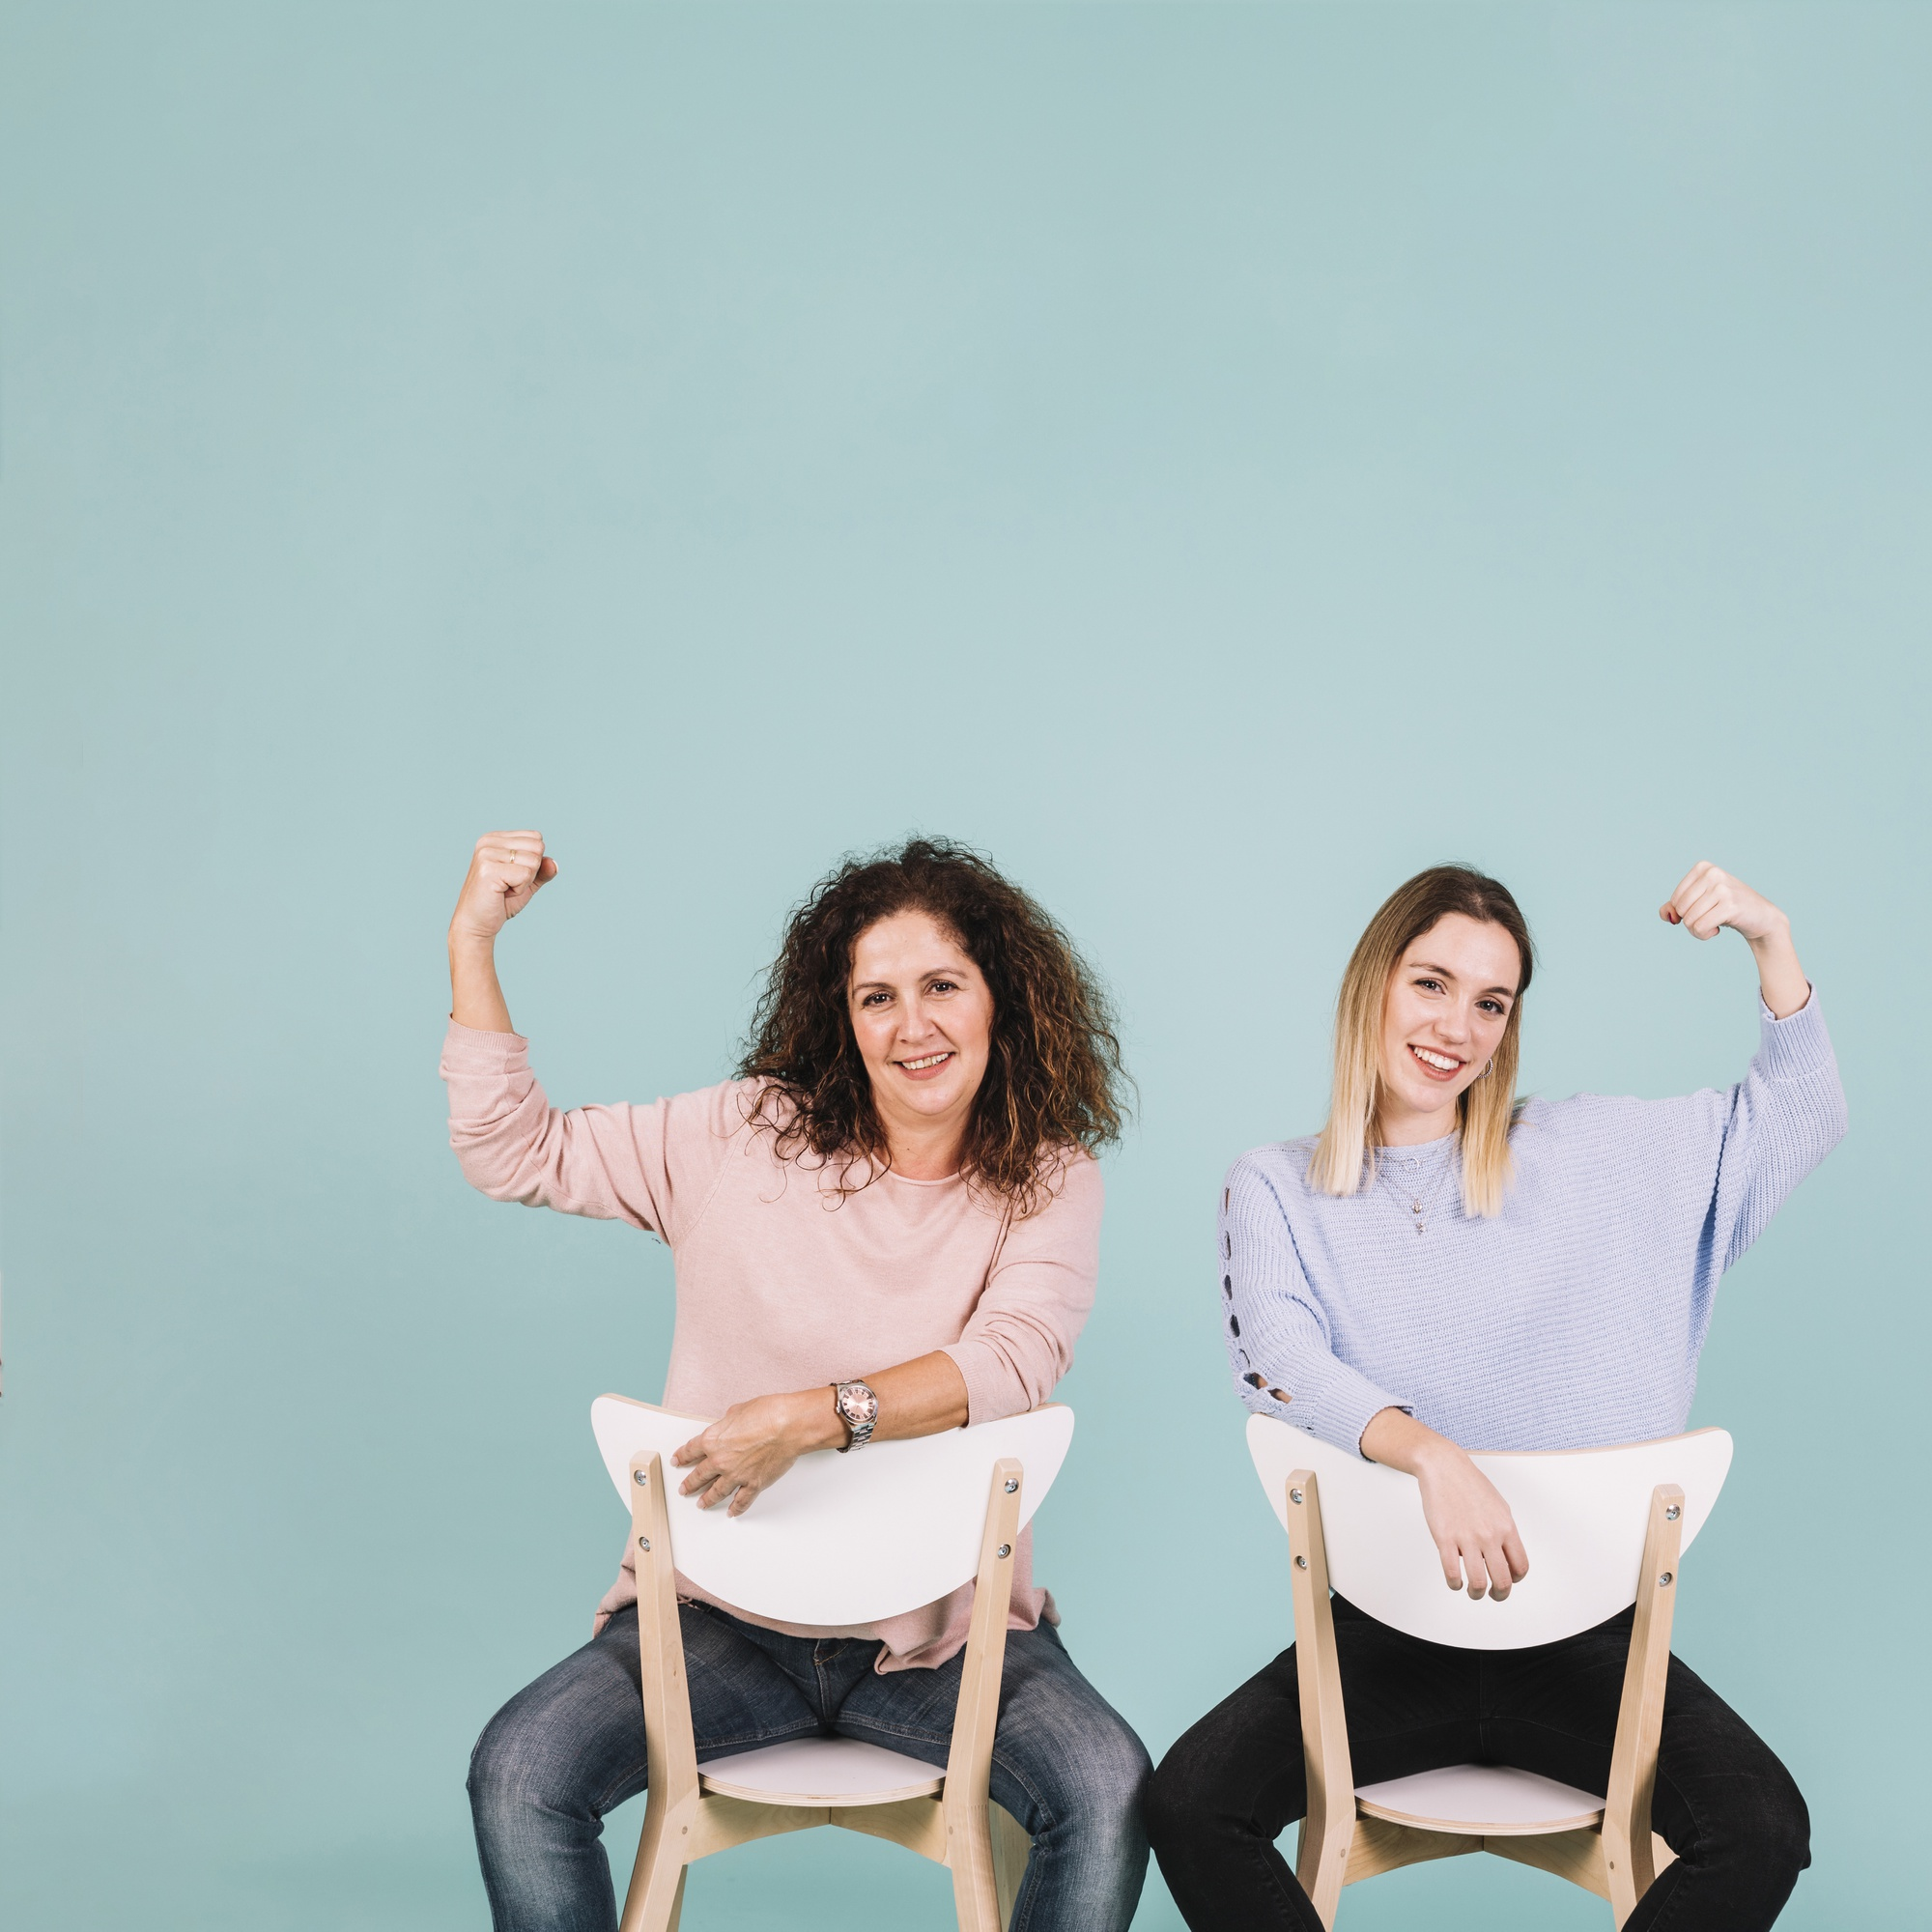 Women on chairs showing power gesture